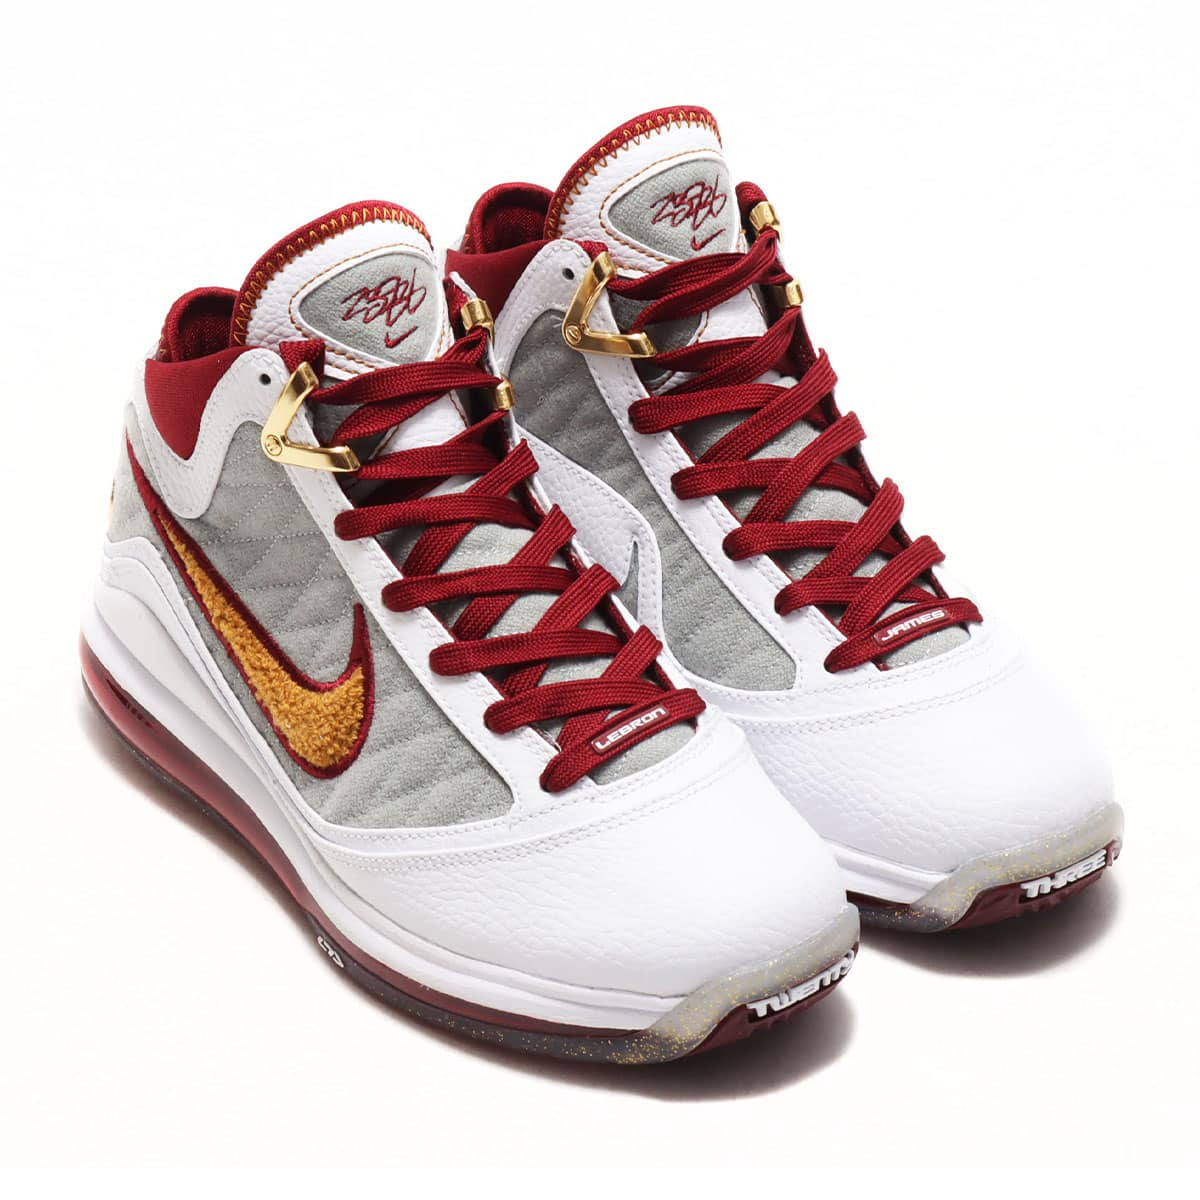 NIKE LEBRON VII (GS) QS WHITE/BRONZE-TEAM RED-WOLF GREY 20SU-S_photo_large